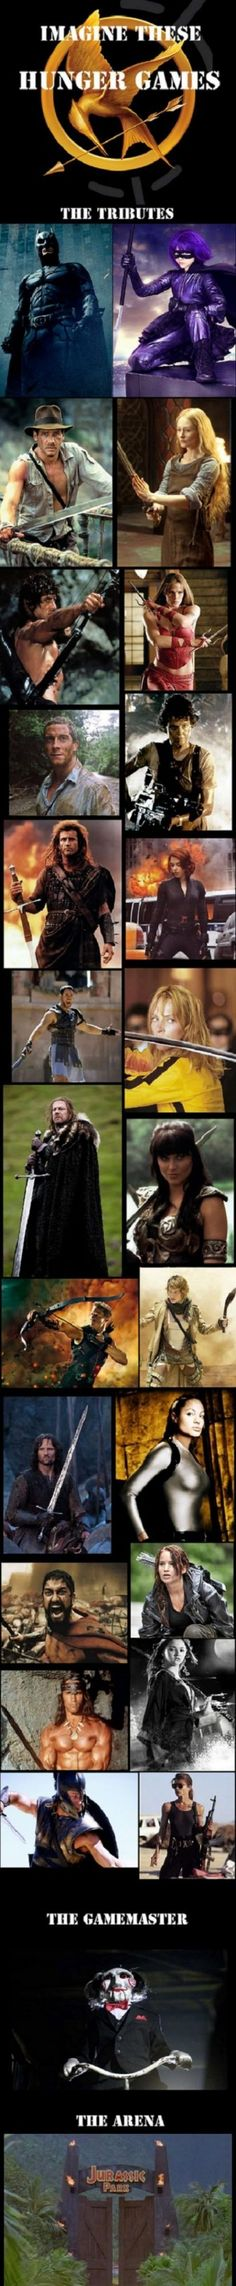 Hunger Games Perfected - Sean Bean is screwed.